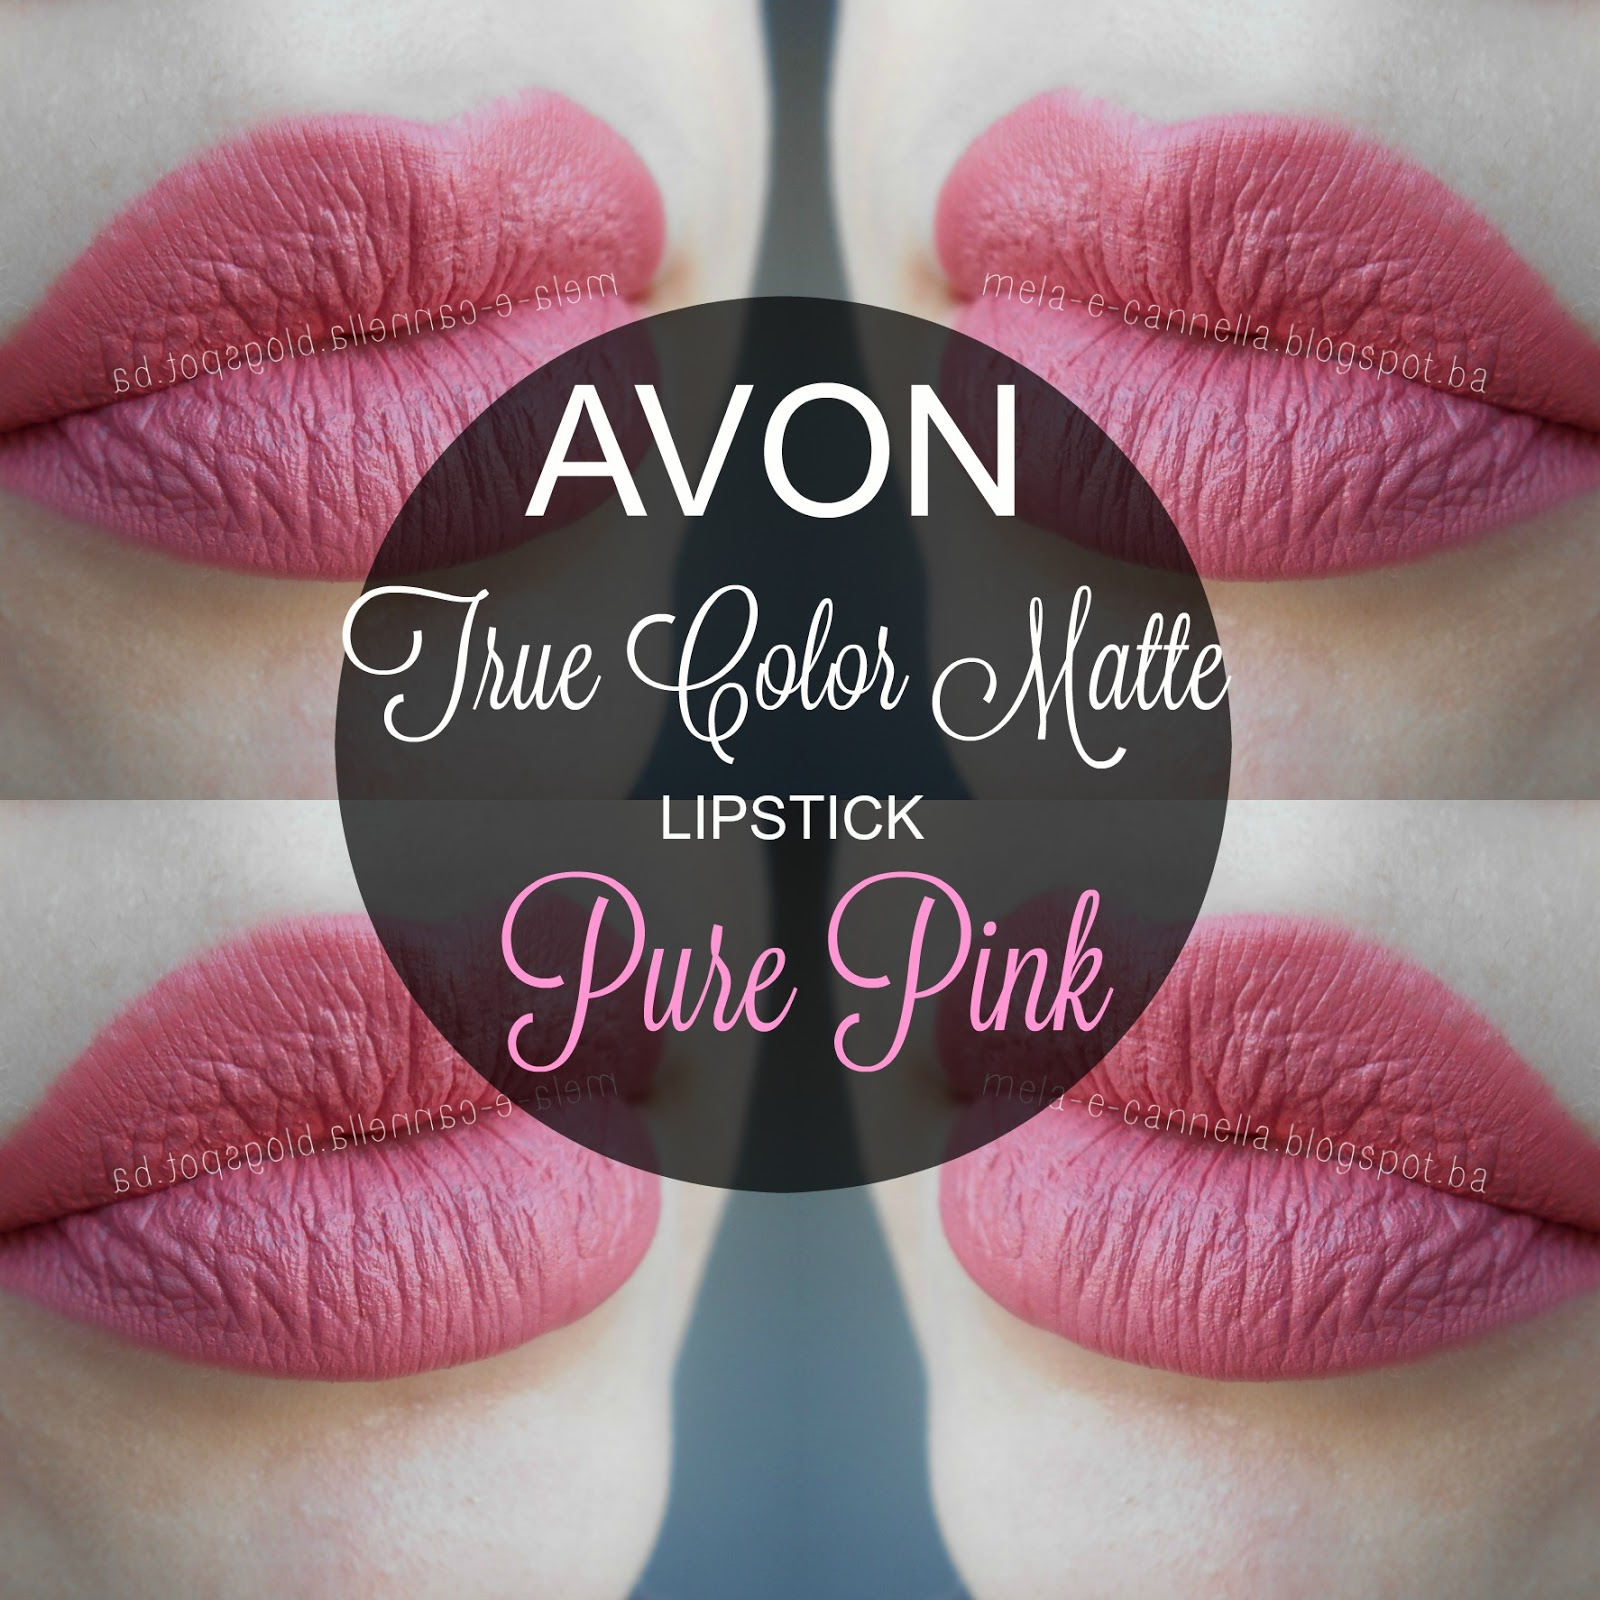 about avon About avon new avon llc (avon) is the leading social selling beauty company in north america, with independent sales representatives across the united states, puerto rico and canada.